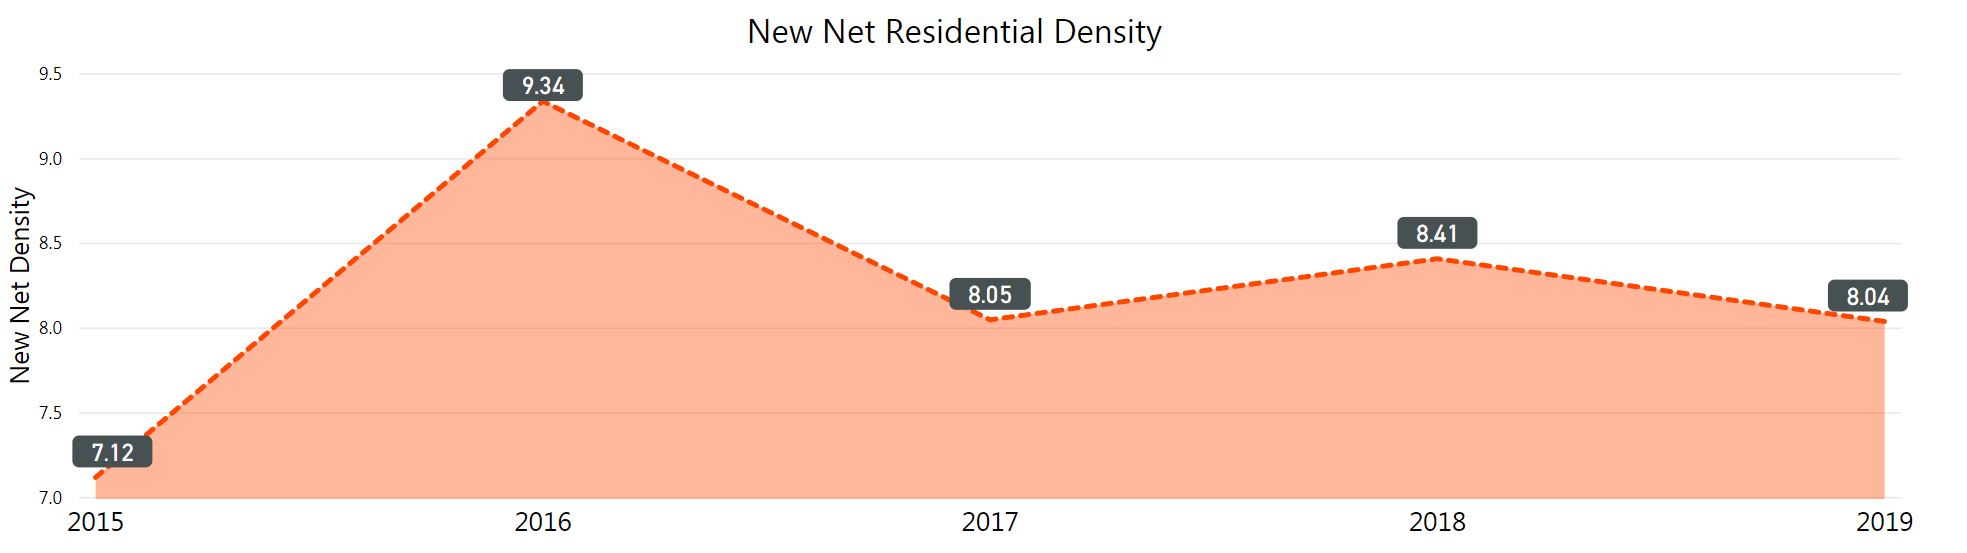 graph new net residential density. low 2015 at 7.12. High 2016 at 9.34. 2019 8.04.